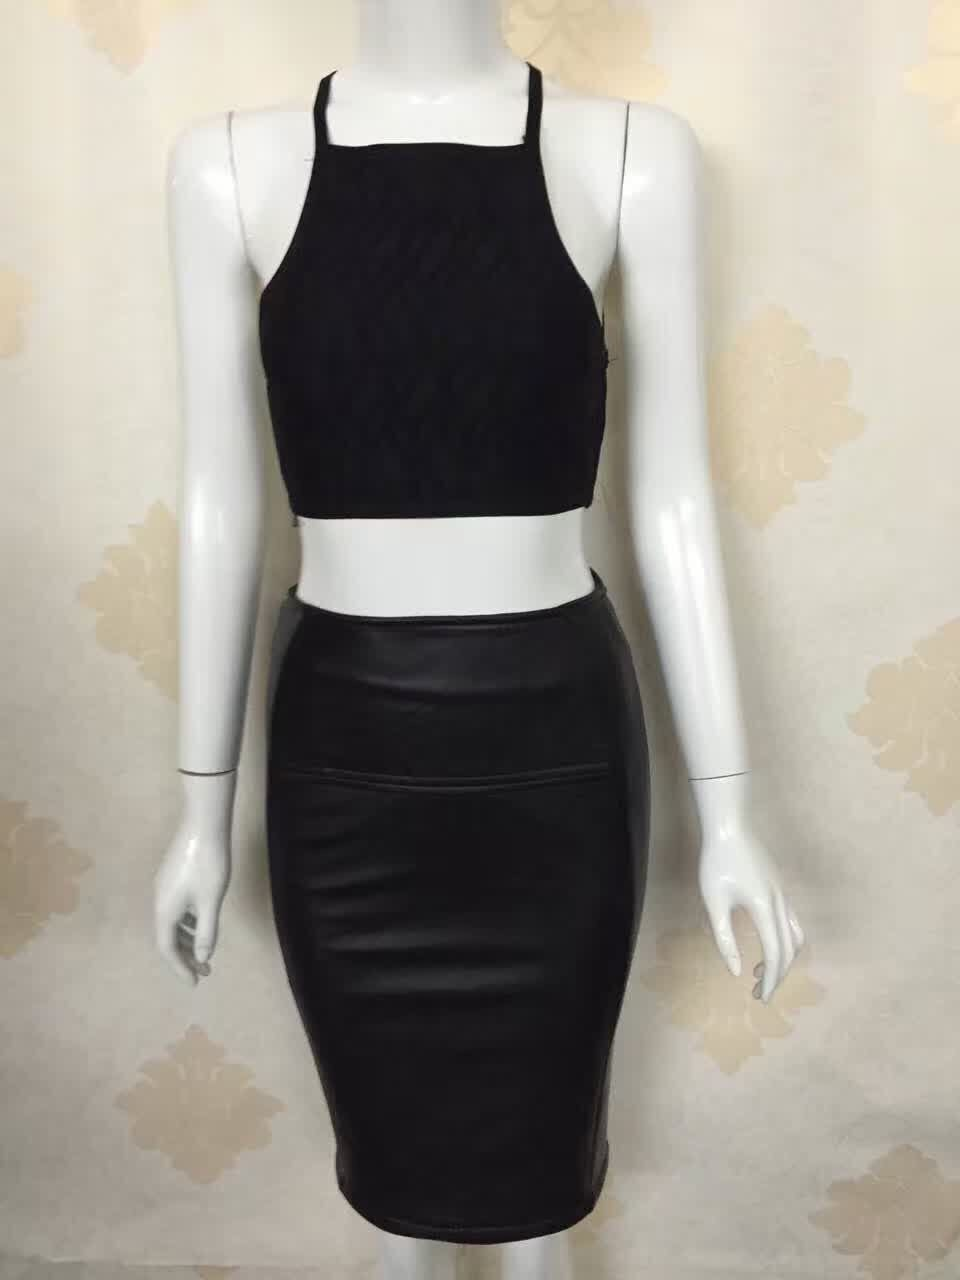 Top Quality Celebrity 2 Pieces Set Black Rayon Bandage Leather Dress Evening Party Bodycon Dress